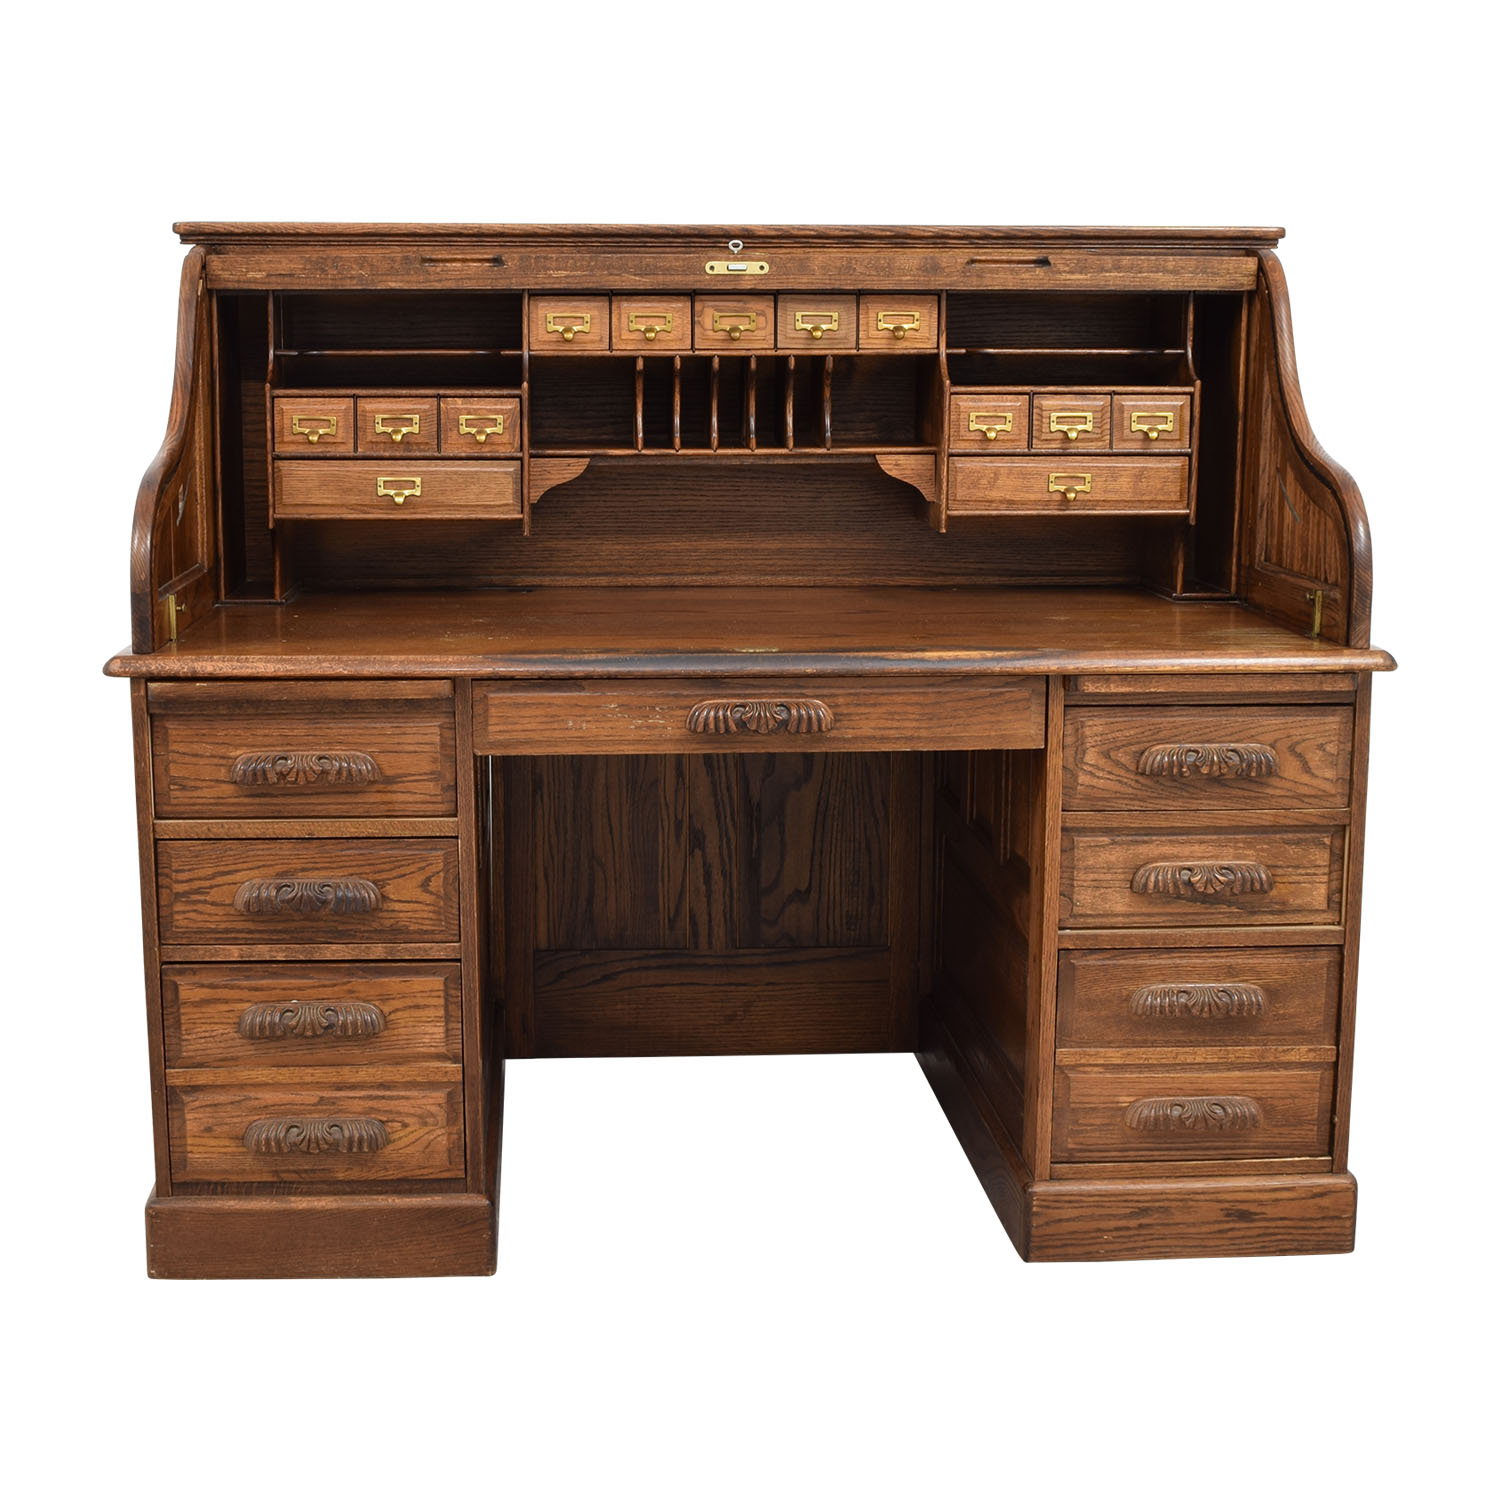 Antique Oak Roll-Top Desk nj ... - 84% OFF - Antique Oak Roll-Top Desk / Tables